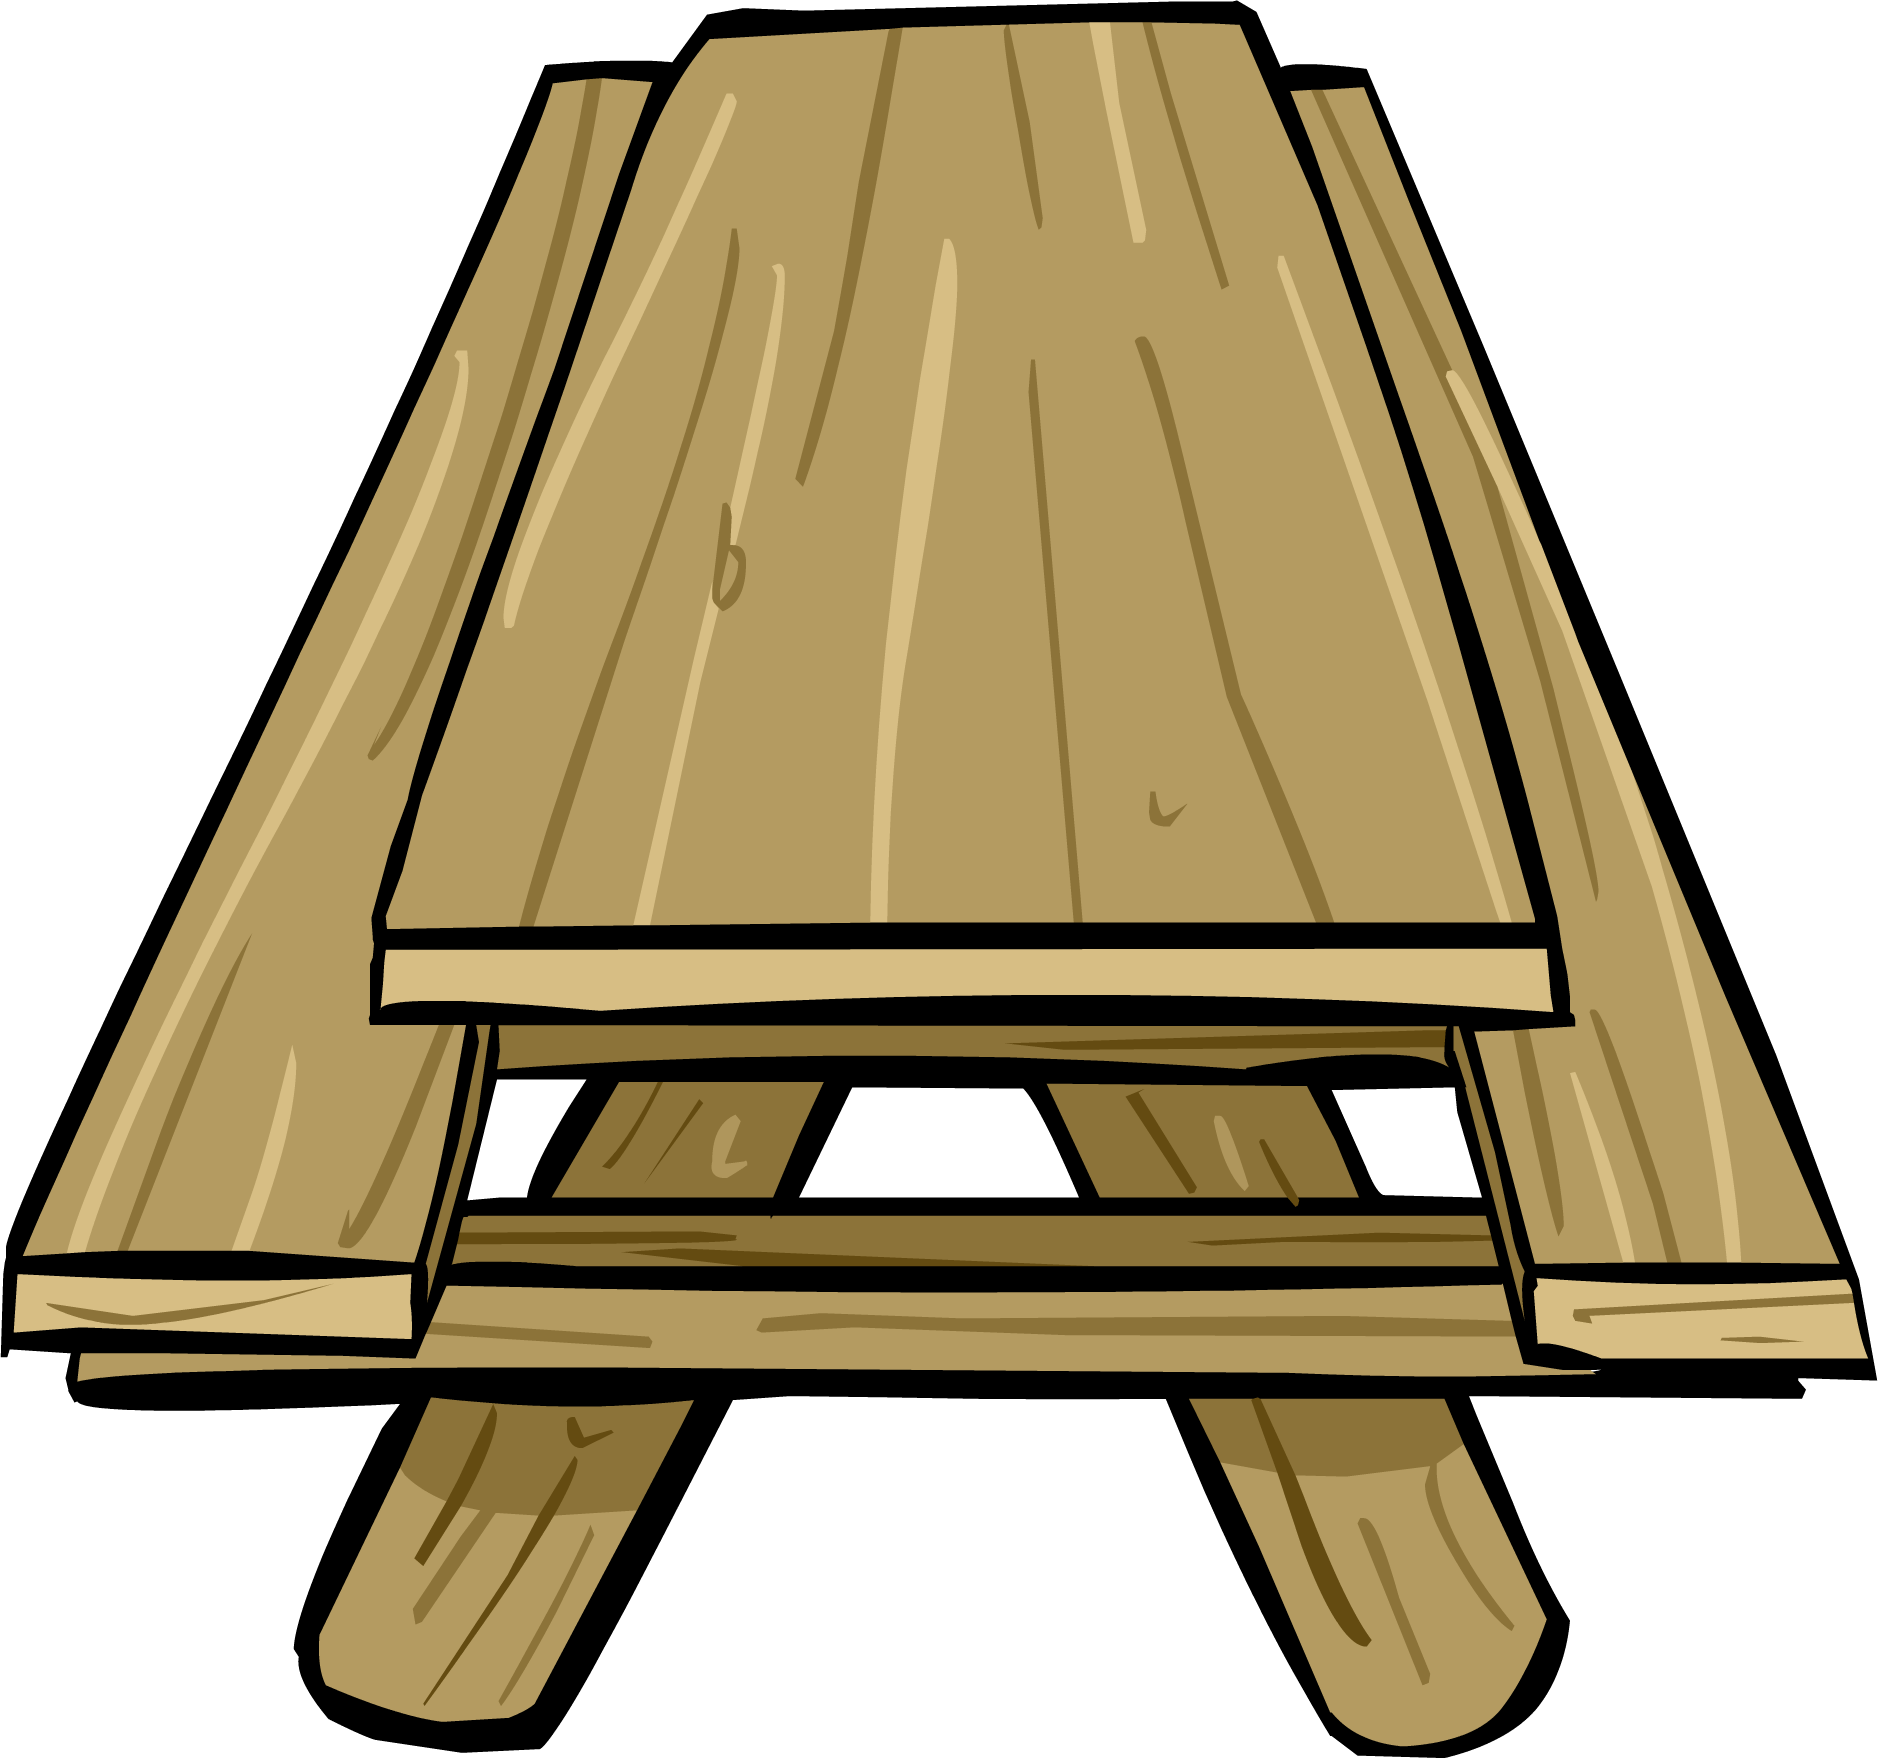 image picnic table png club penguin wiki fandom powered by wikia. Black Bedroom Furniture Sets. Home Design Ideas